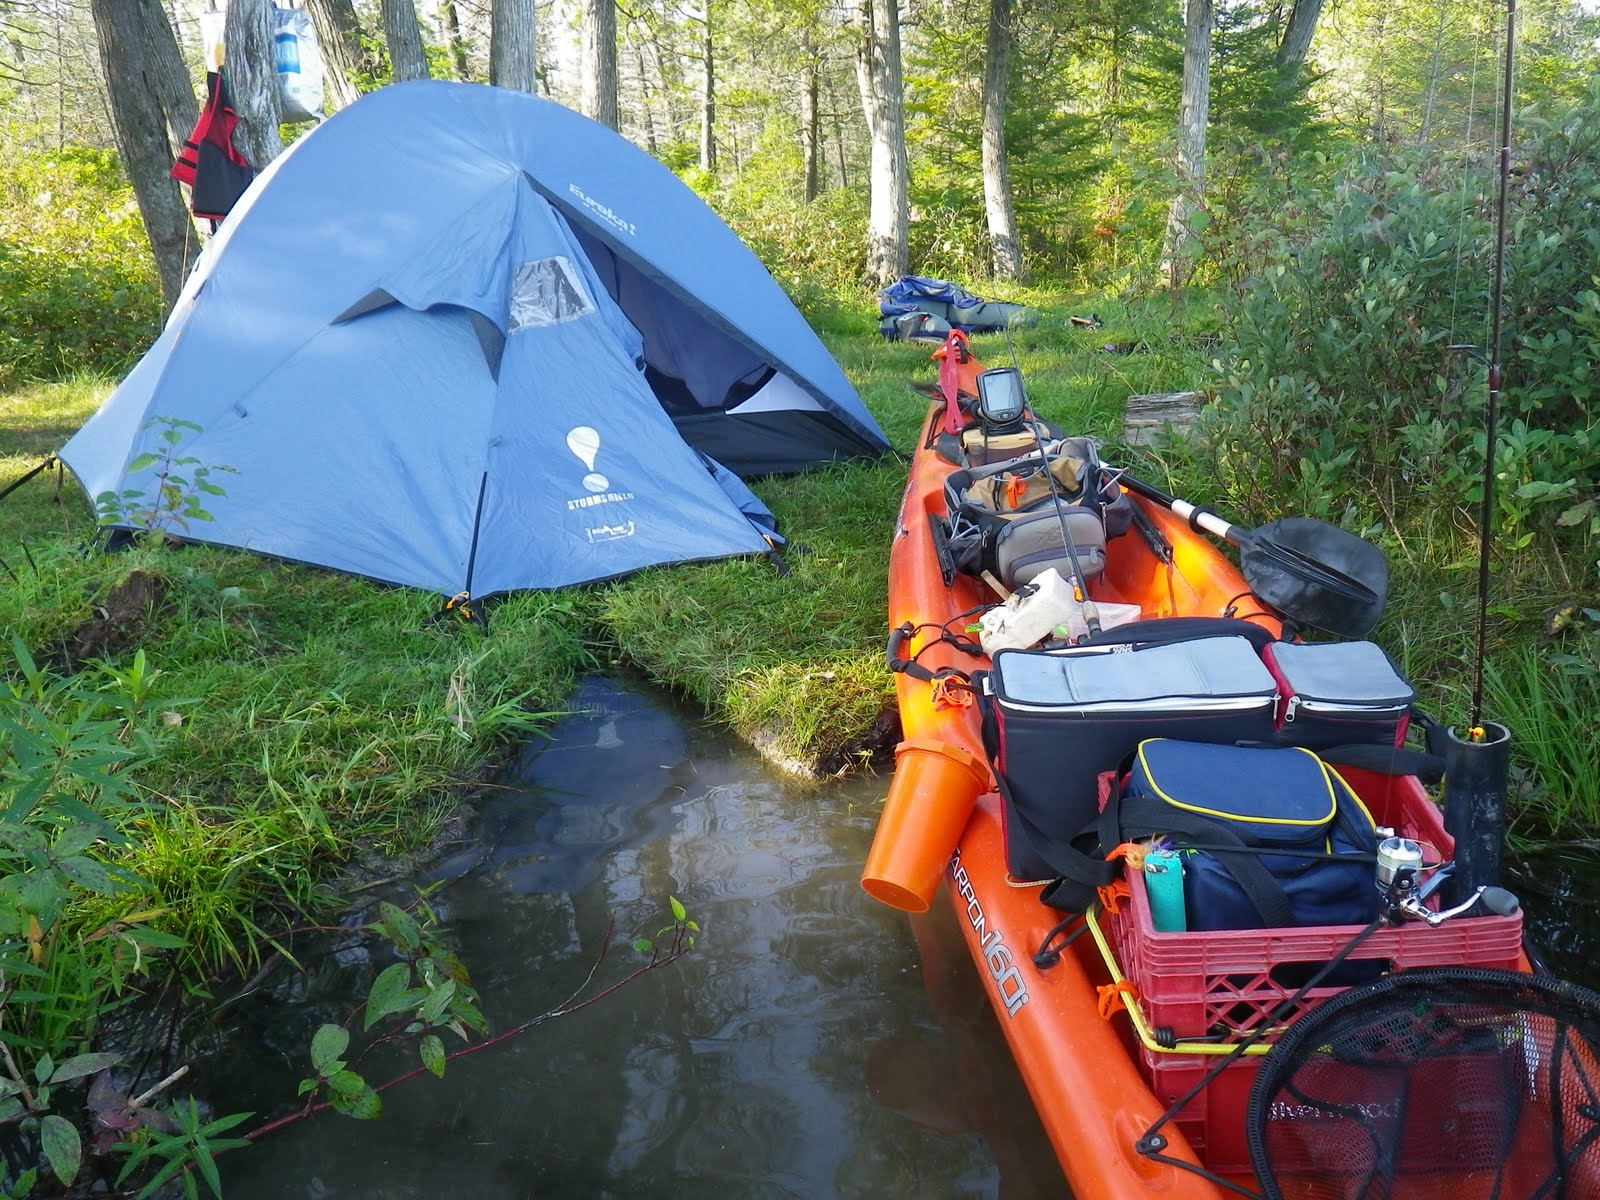 Fish On The Fly: Solo Kayak/Camping /Fishing Trip